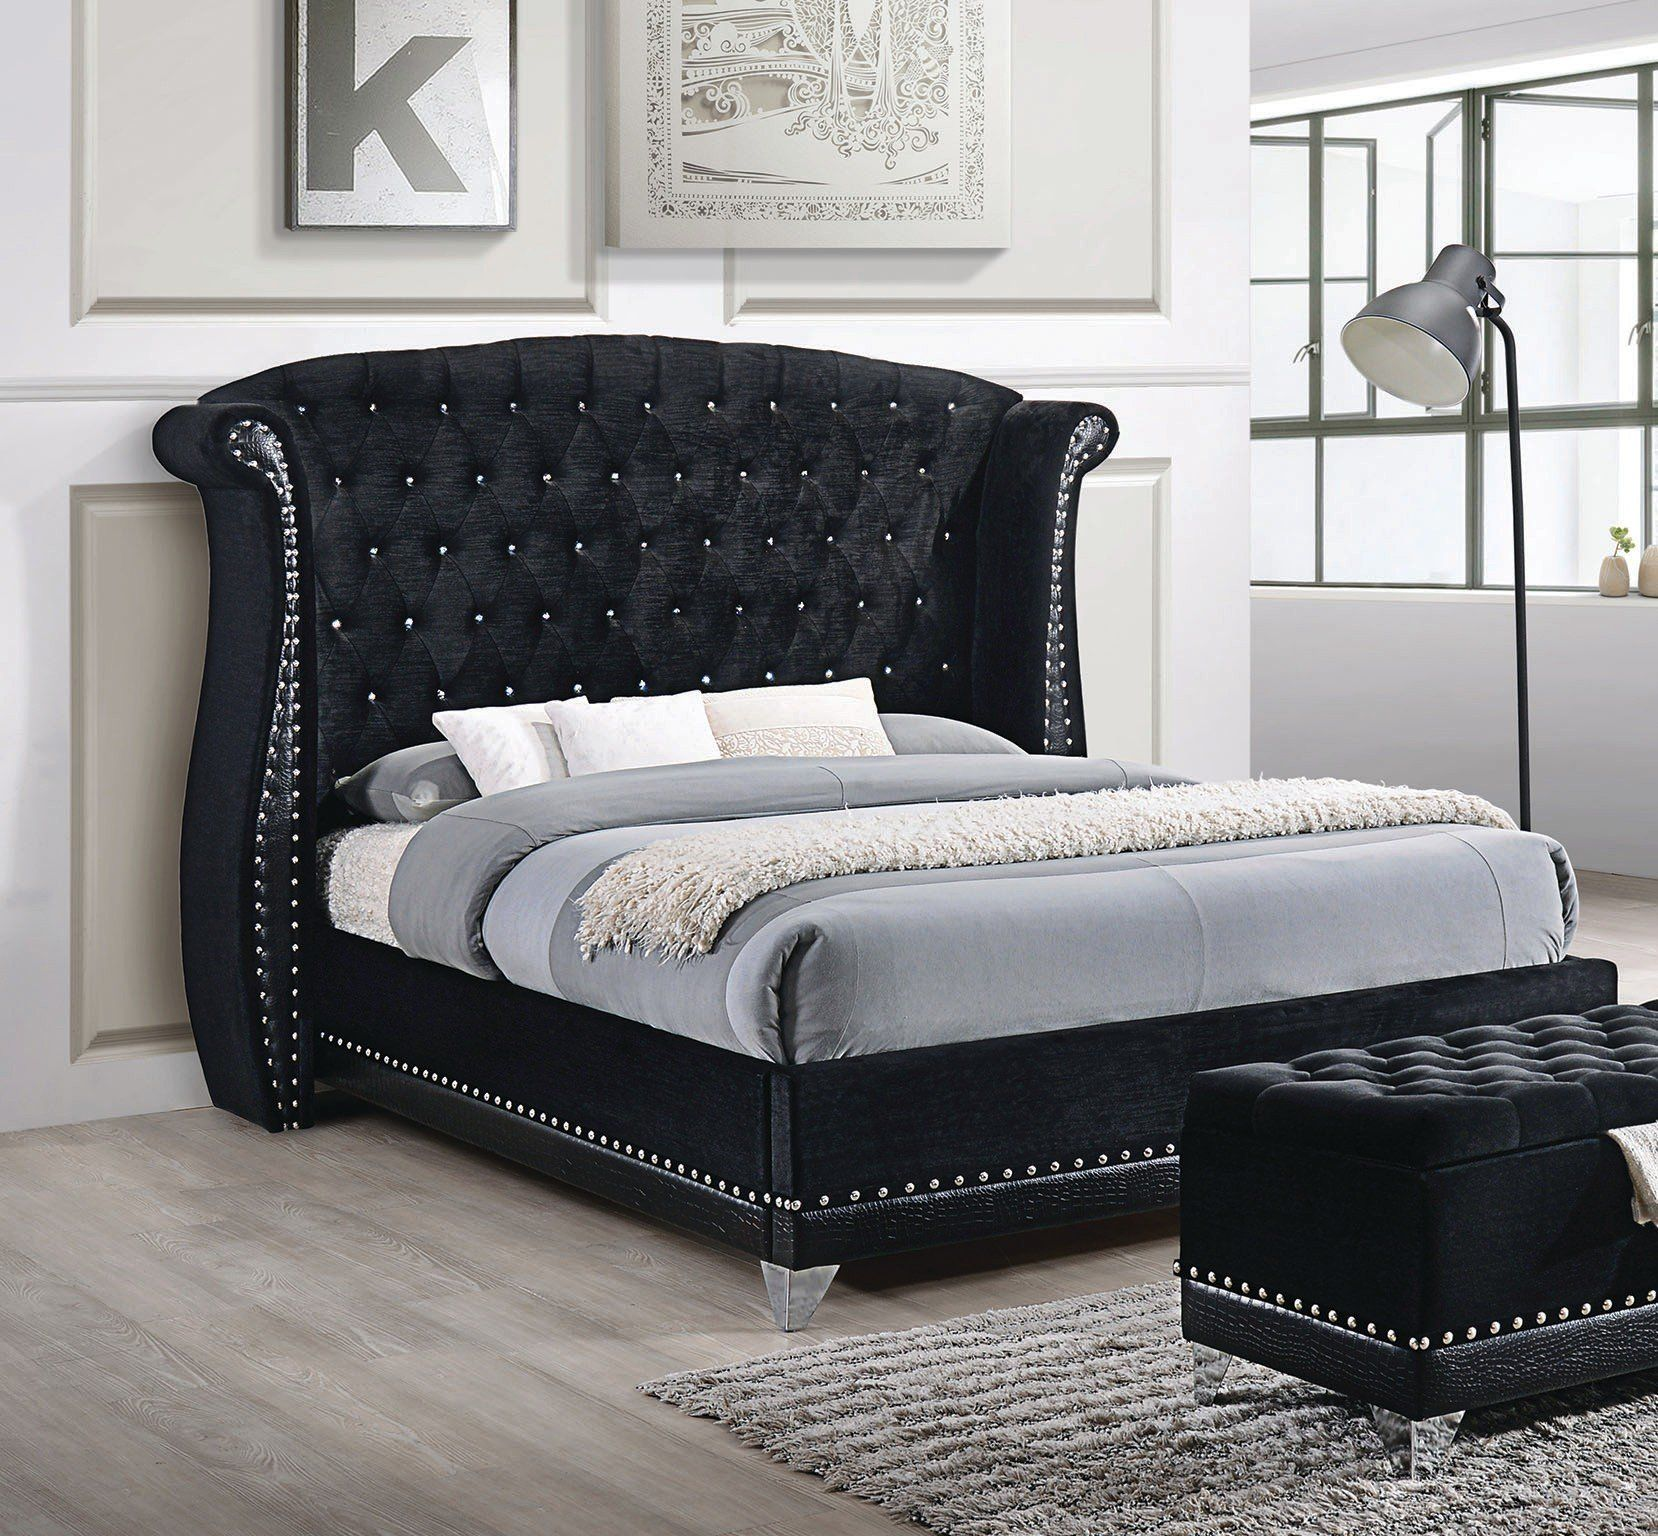 Barzini Collection Black Velvet Eastern King Platform Bed